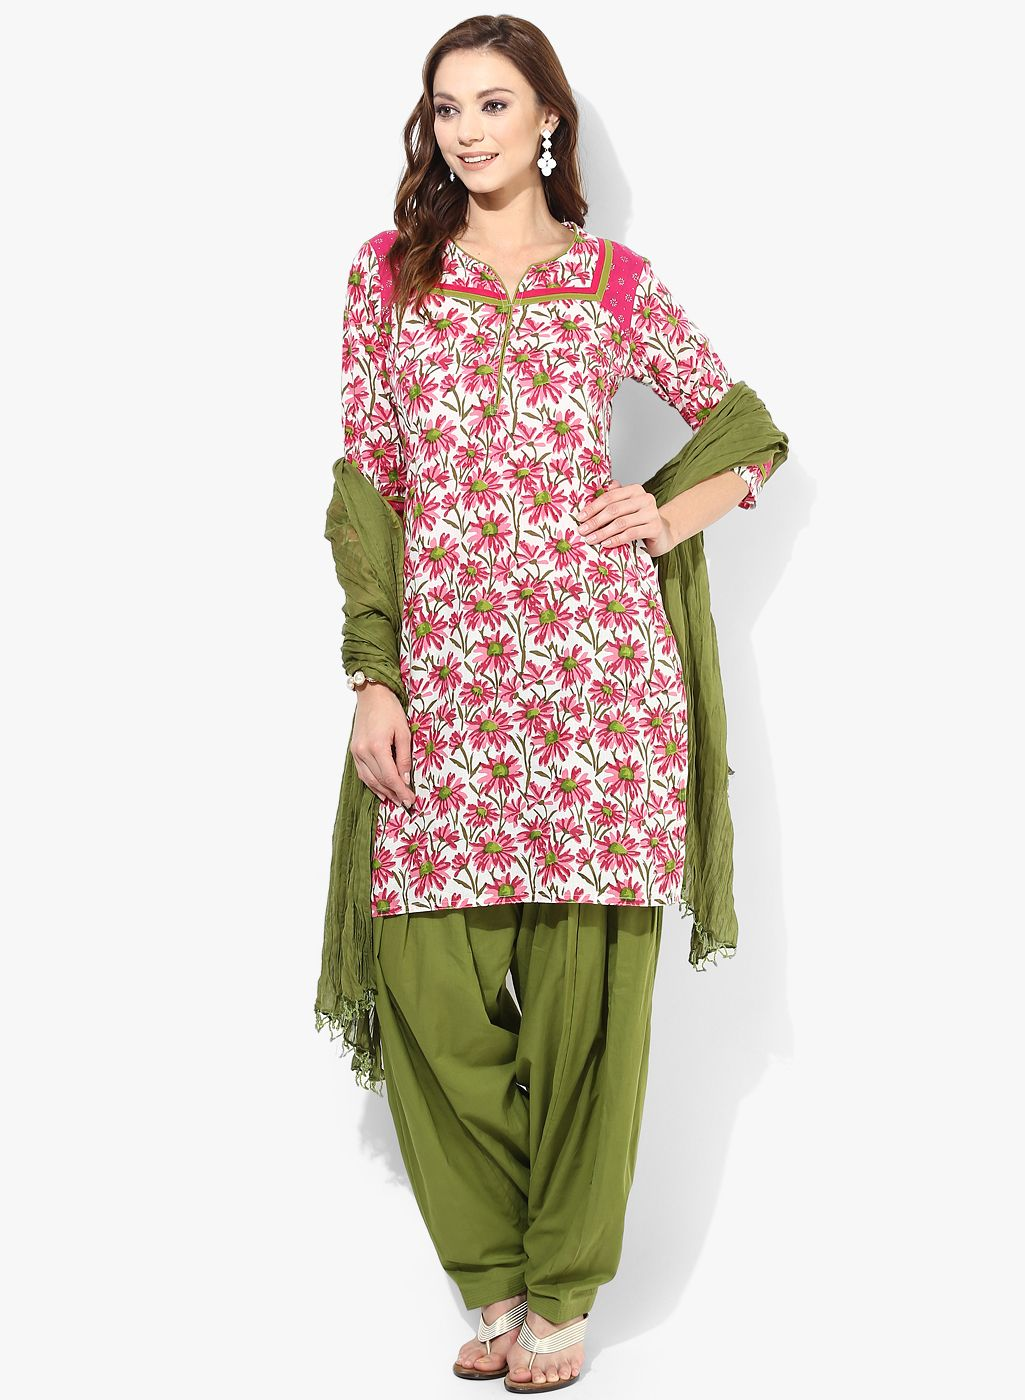 d771176e89 Jaipur Kurti Cotton Rani Kurti With Mehendi Green Patiala Salwar And Duptta  Now @ Looksgud.in #SalwarSuit #Cotton #Printed